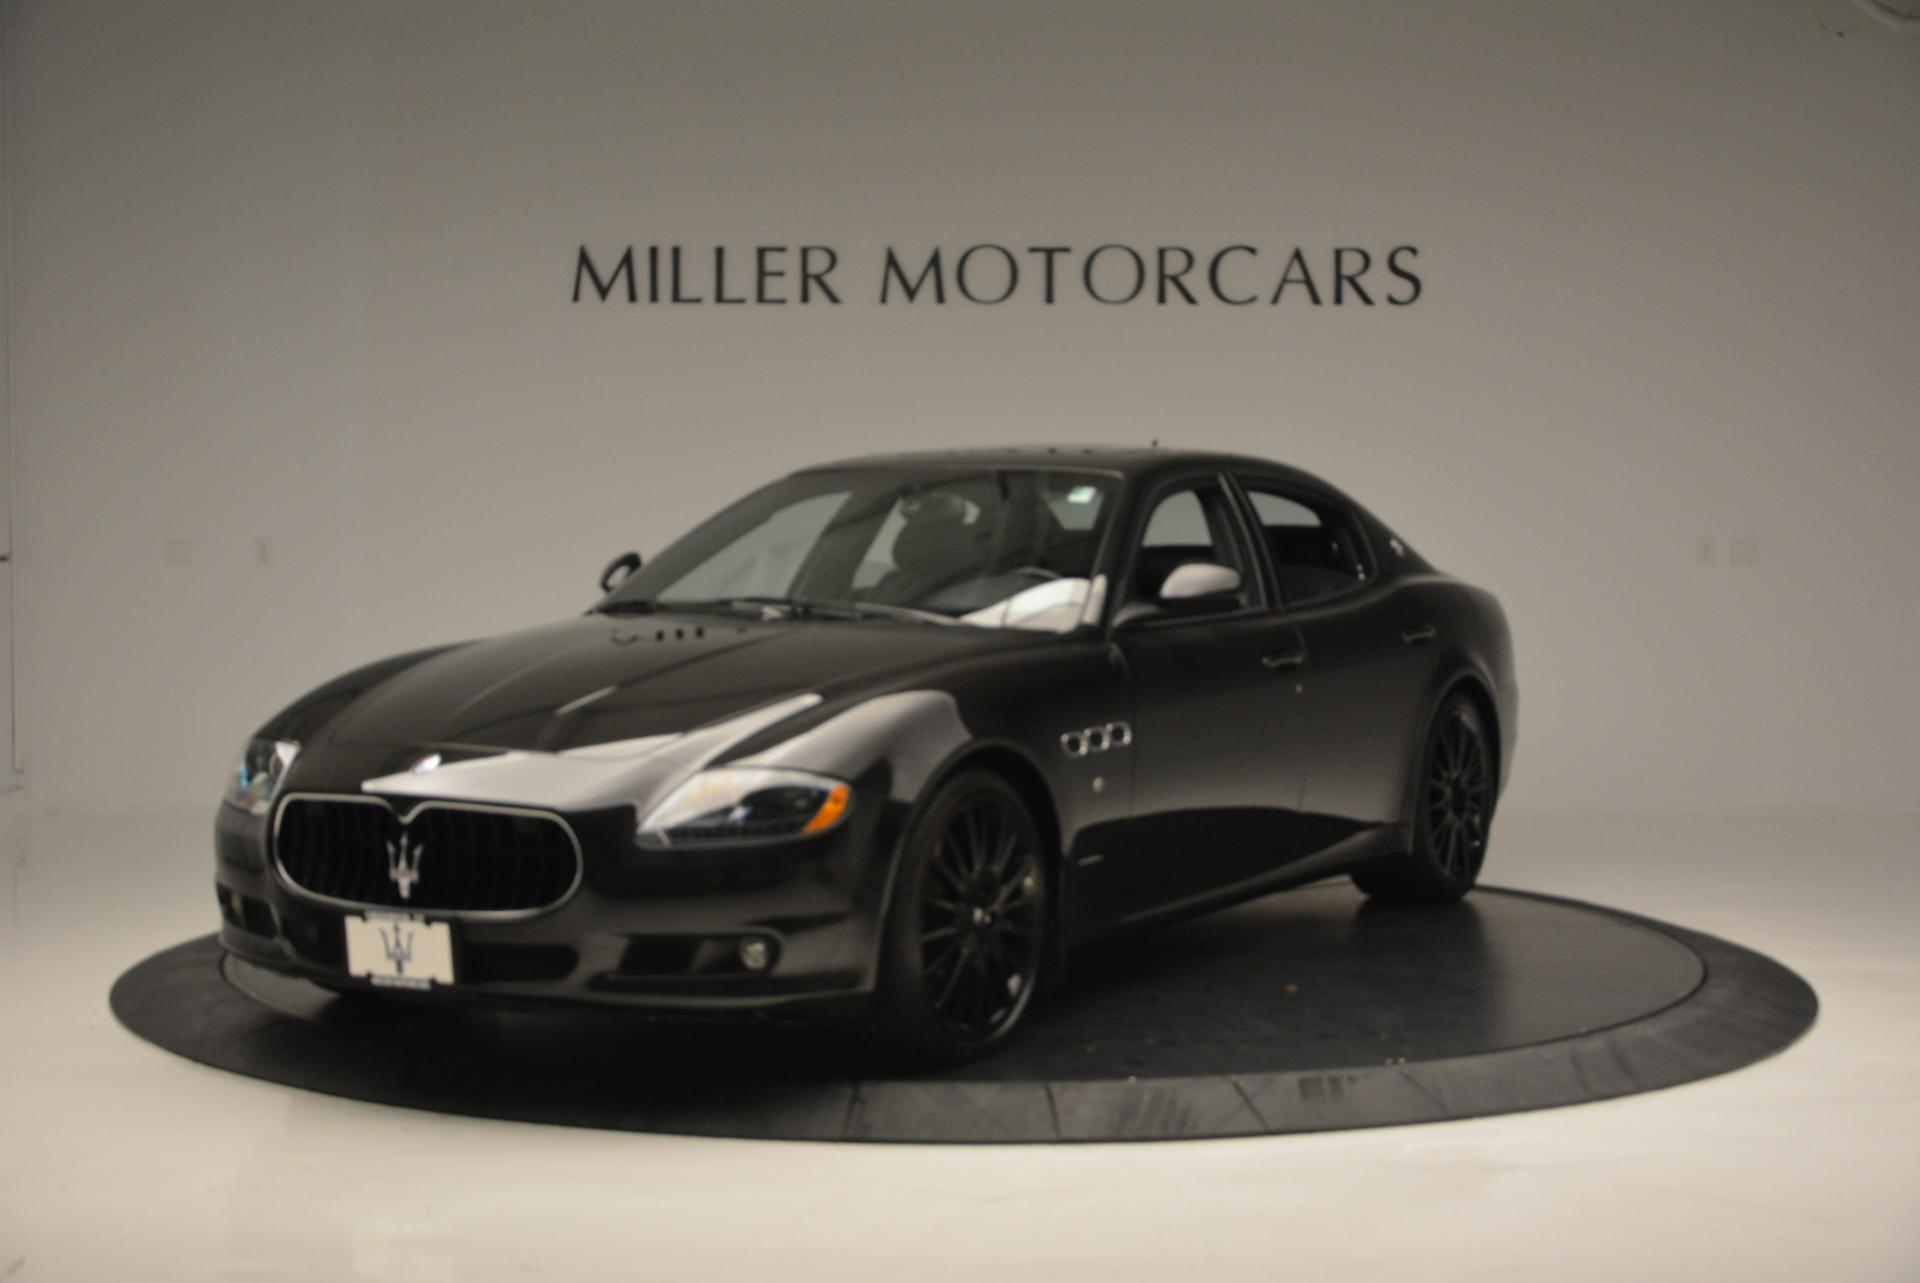 Used 2011 Maserati Quattroporte Sport GT S For Sale In Westport, CT 531_main